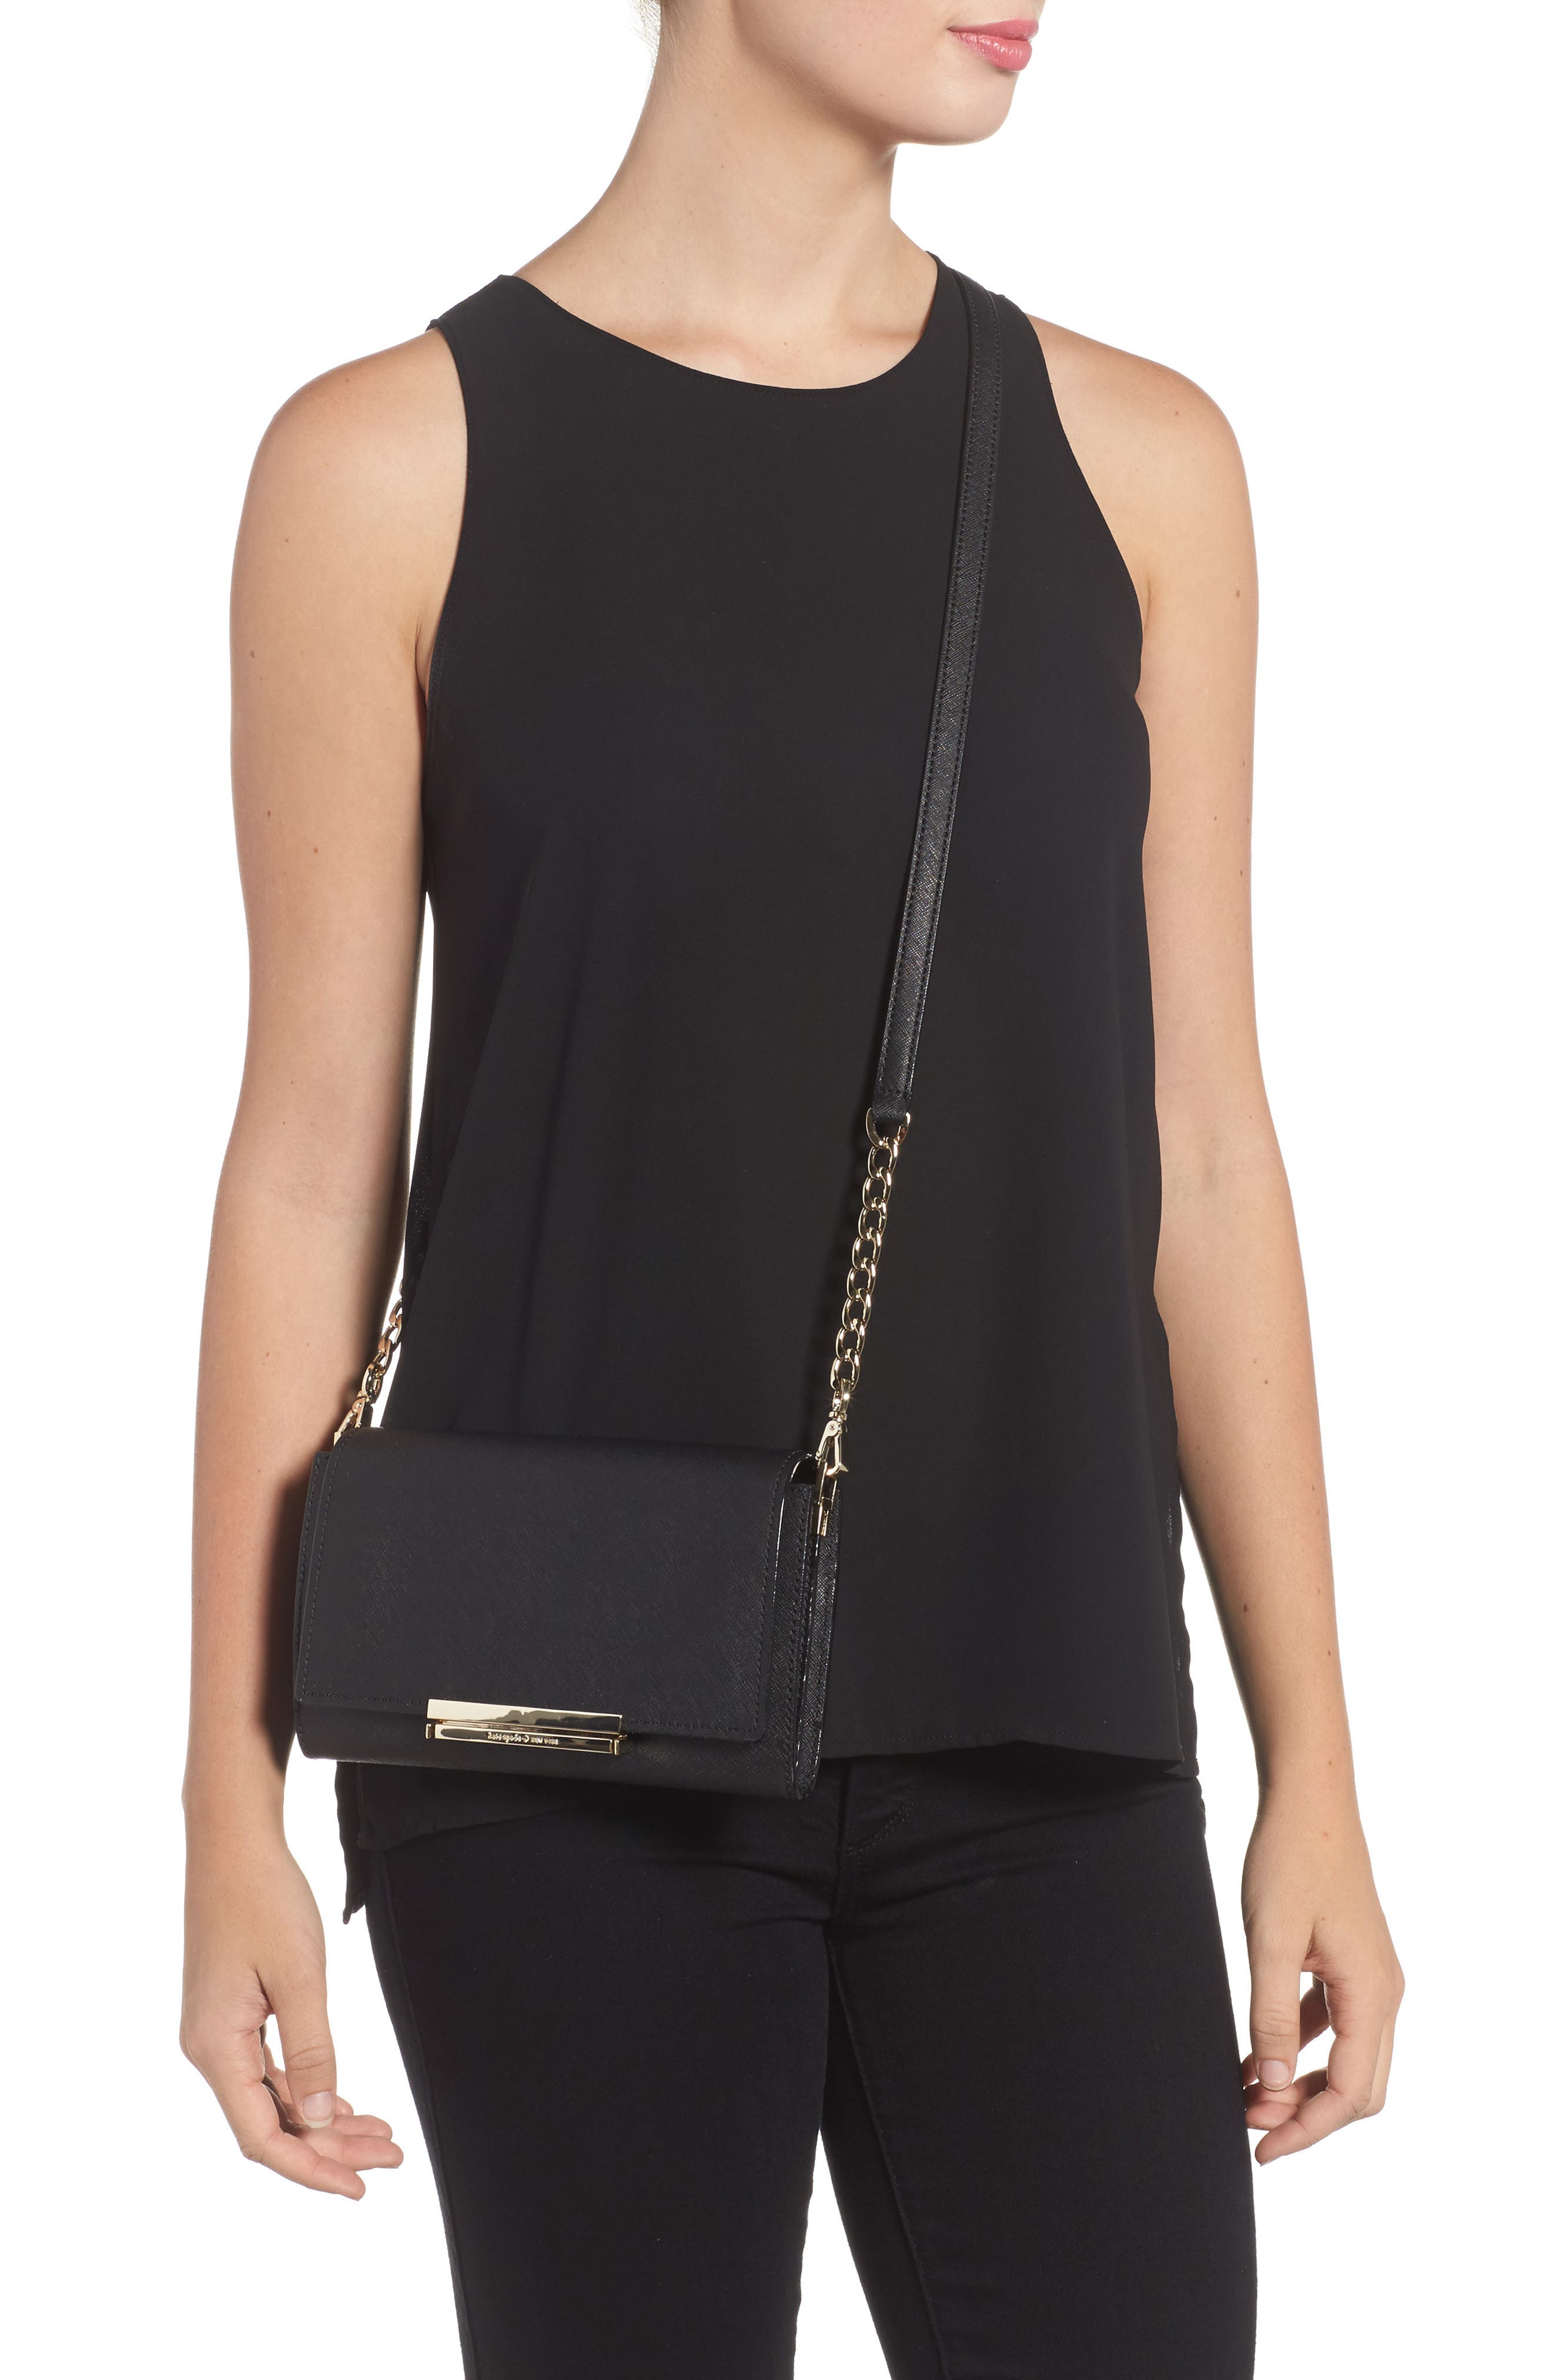 make it mine - camila leather clutch,                             Alternate thumbnail 3, color,